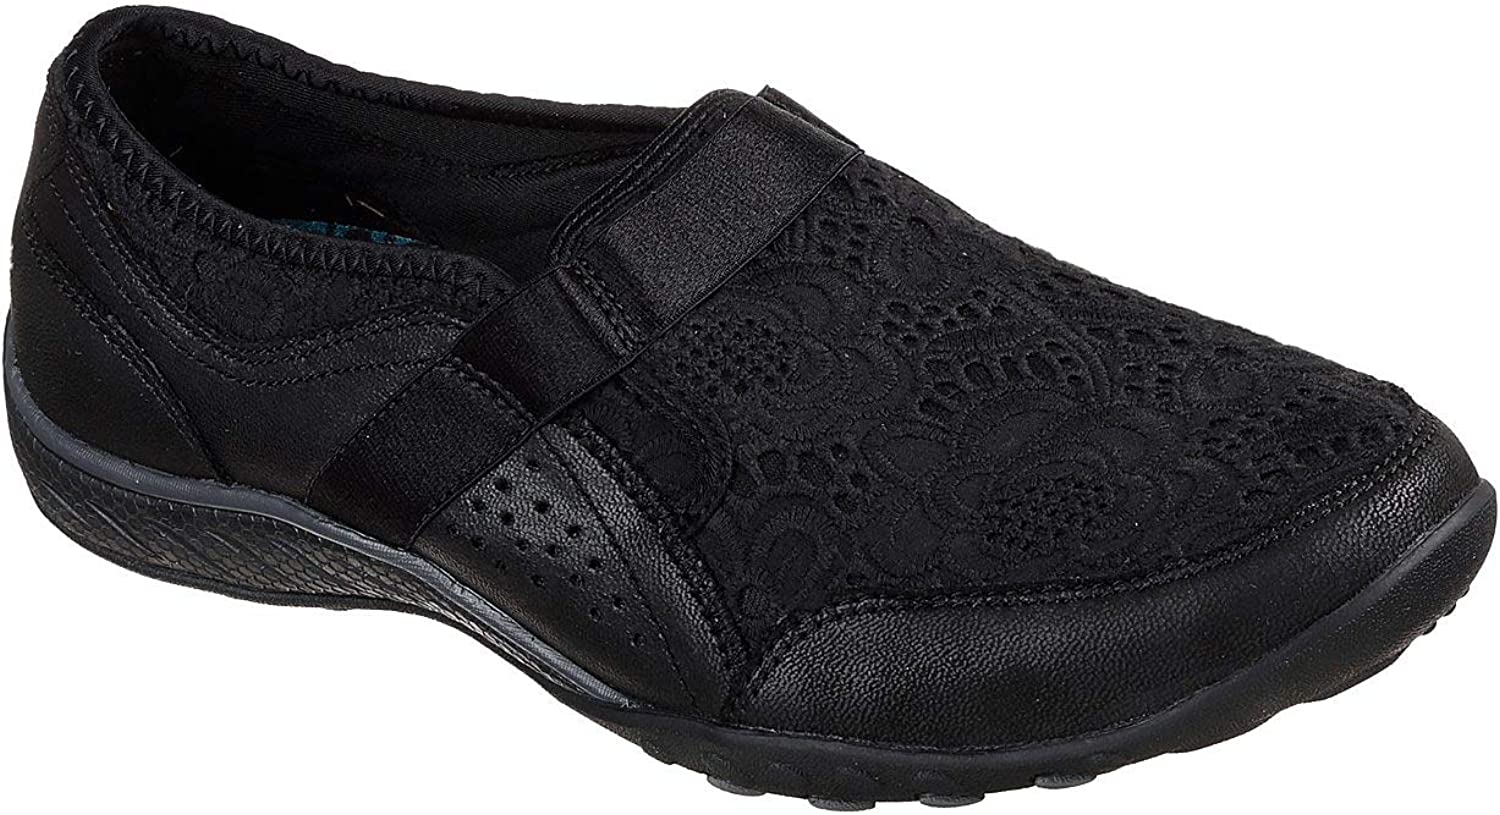 Skechers Relaxed Fit Breathe Easy Thankful Womens Slip On Sneakers